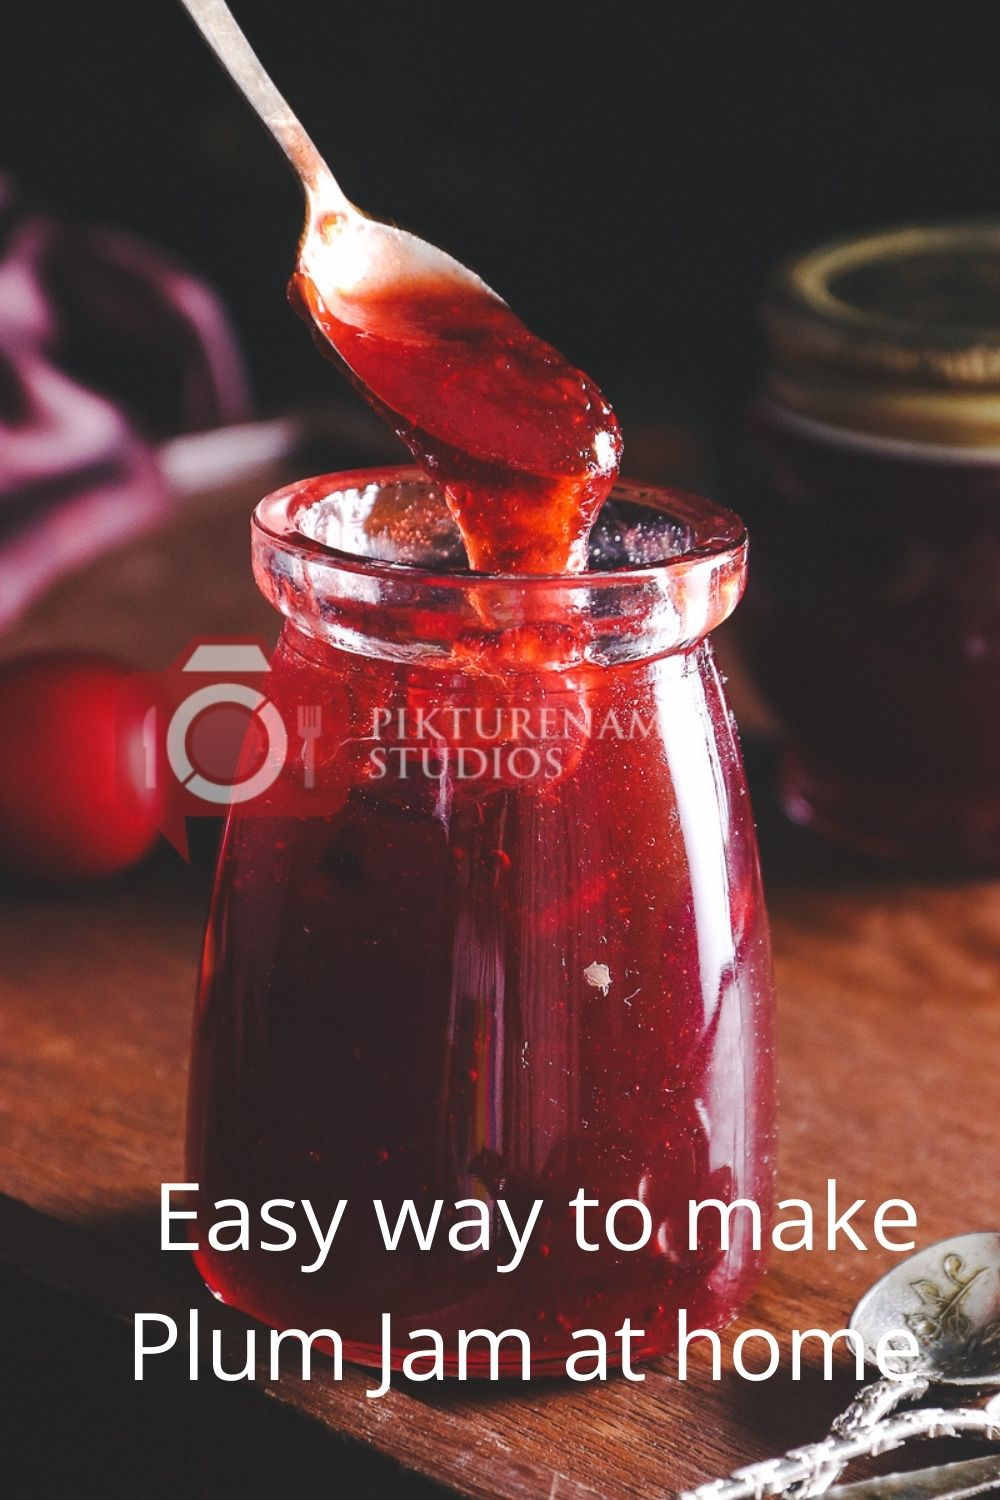 Easyway to make Plum Jam at home for Pinterest - 2